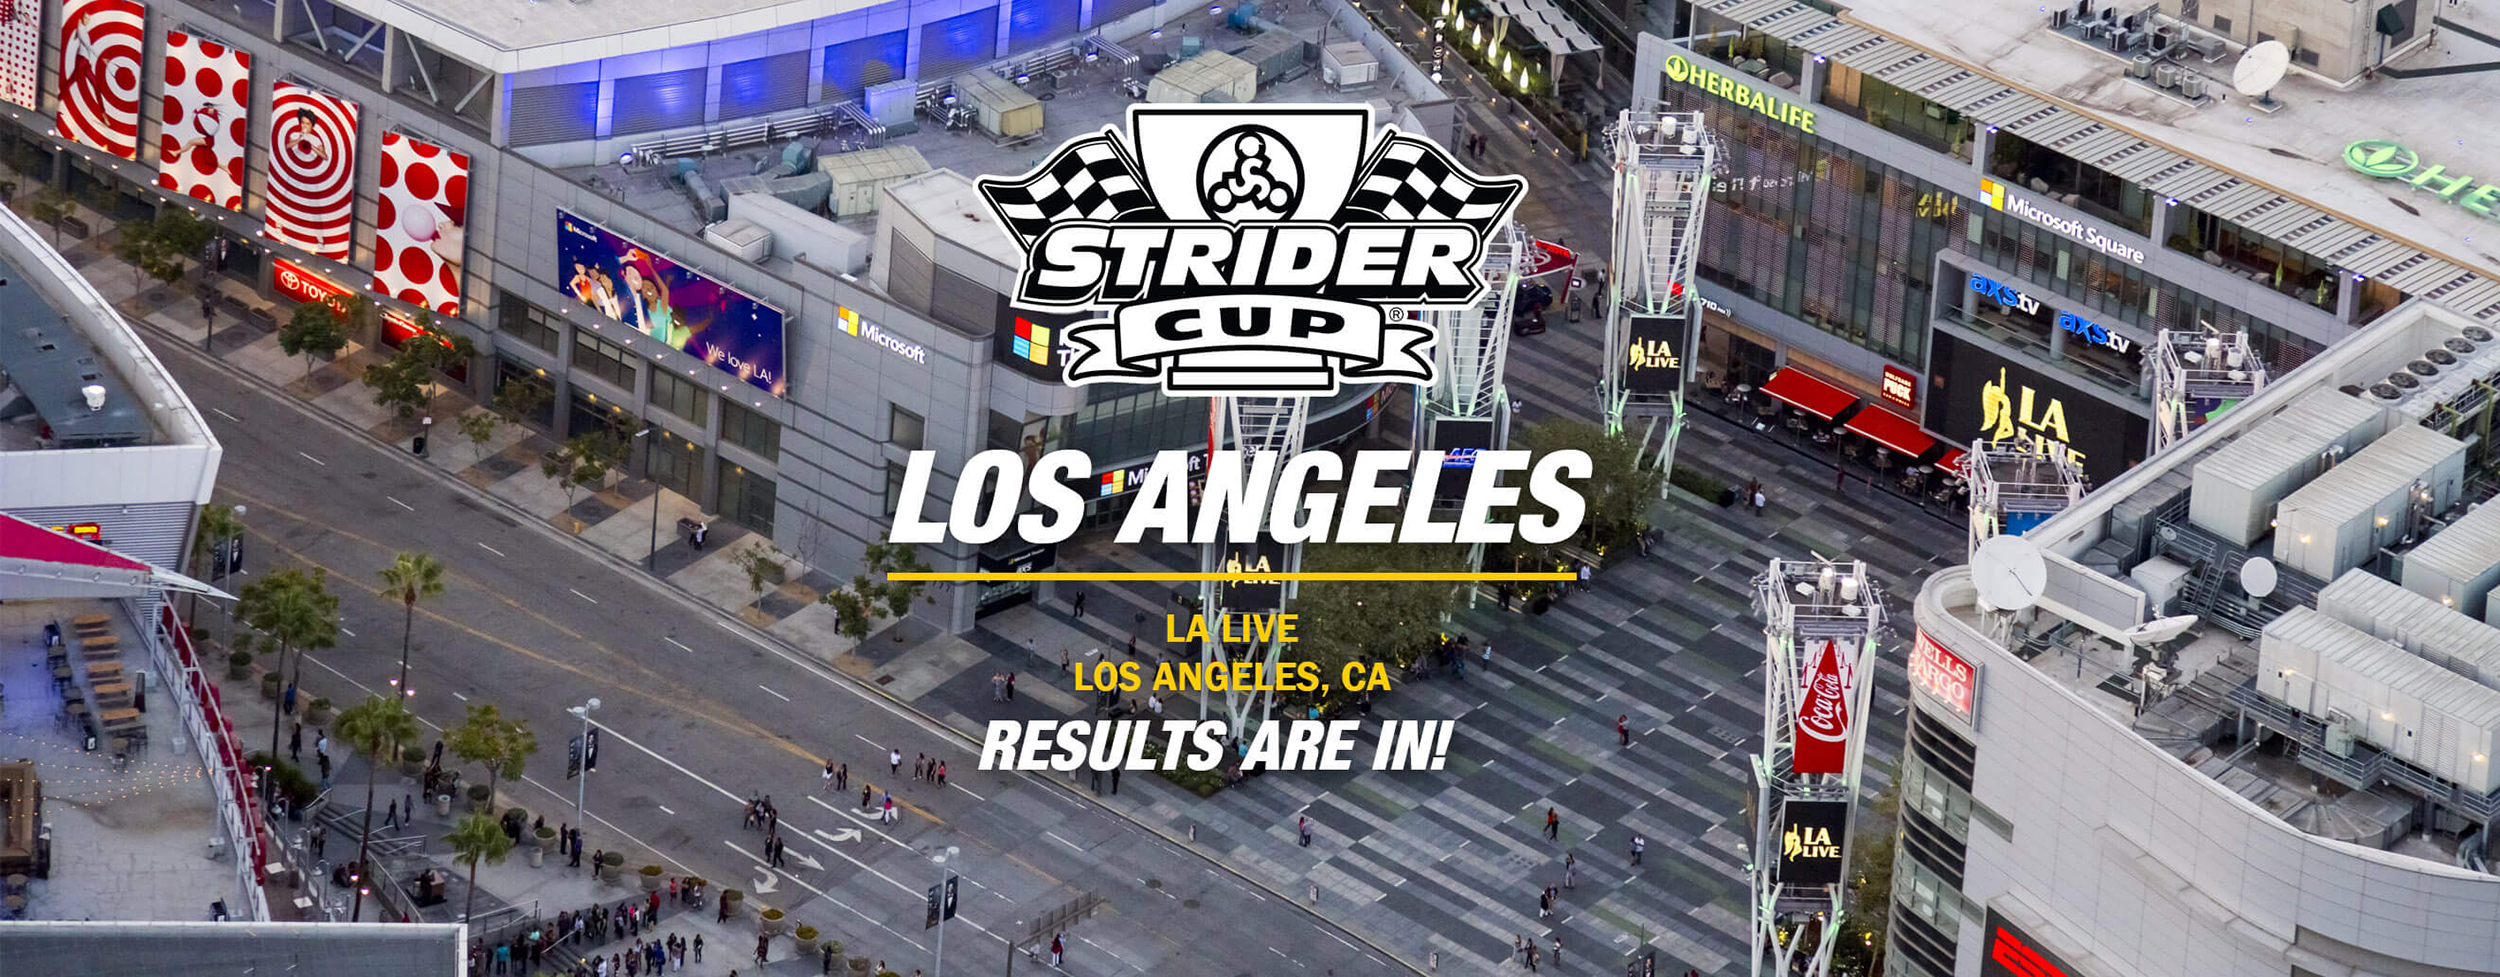 , Events – Los Angeles Results, Strider Balance Bikes